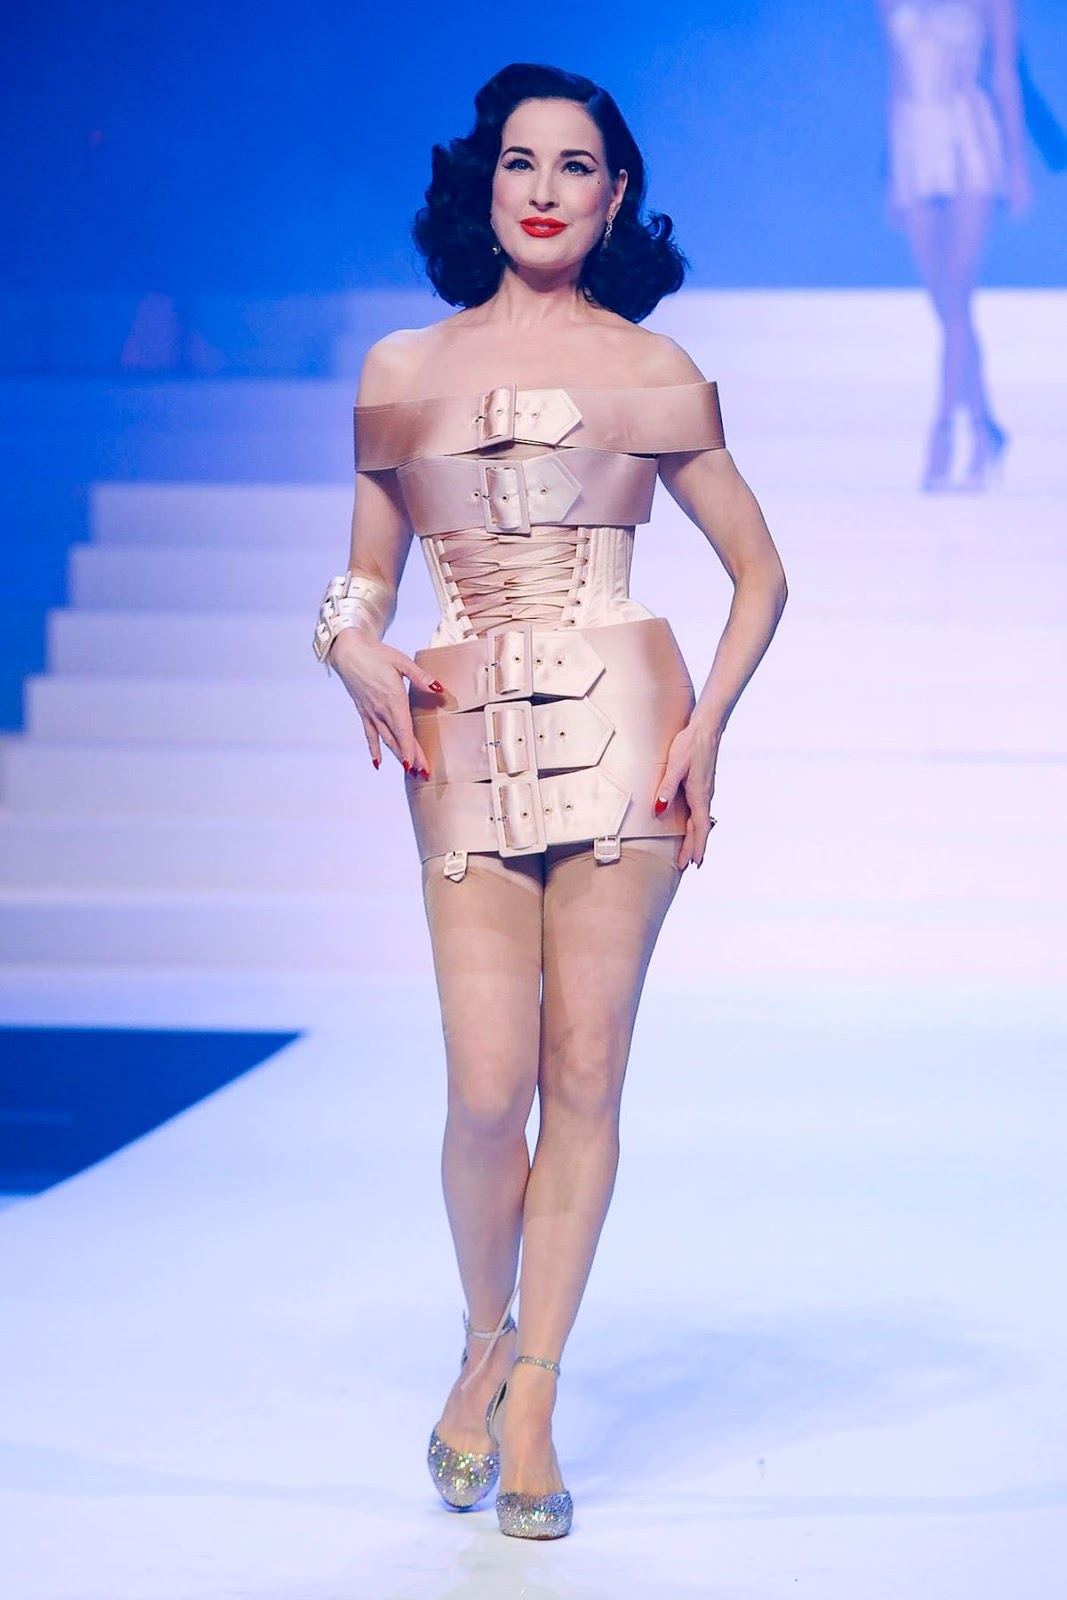 Dita Von Teese, 47, cuts a sultry figure as she walks the runway in minidress made of belts at Paris Fashion Week